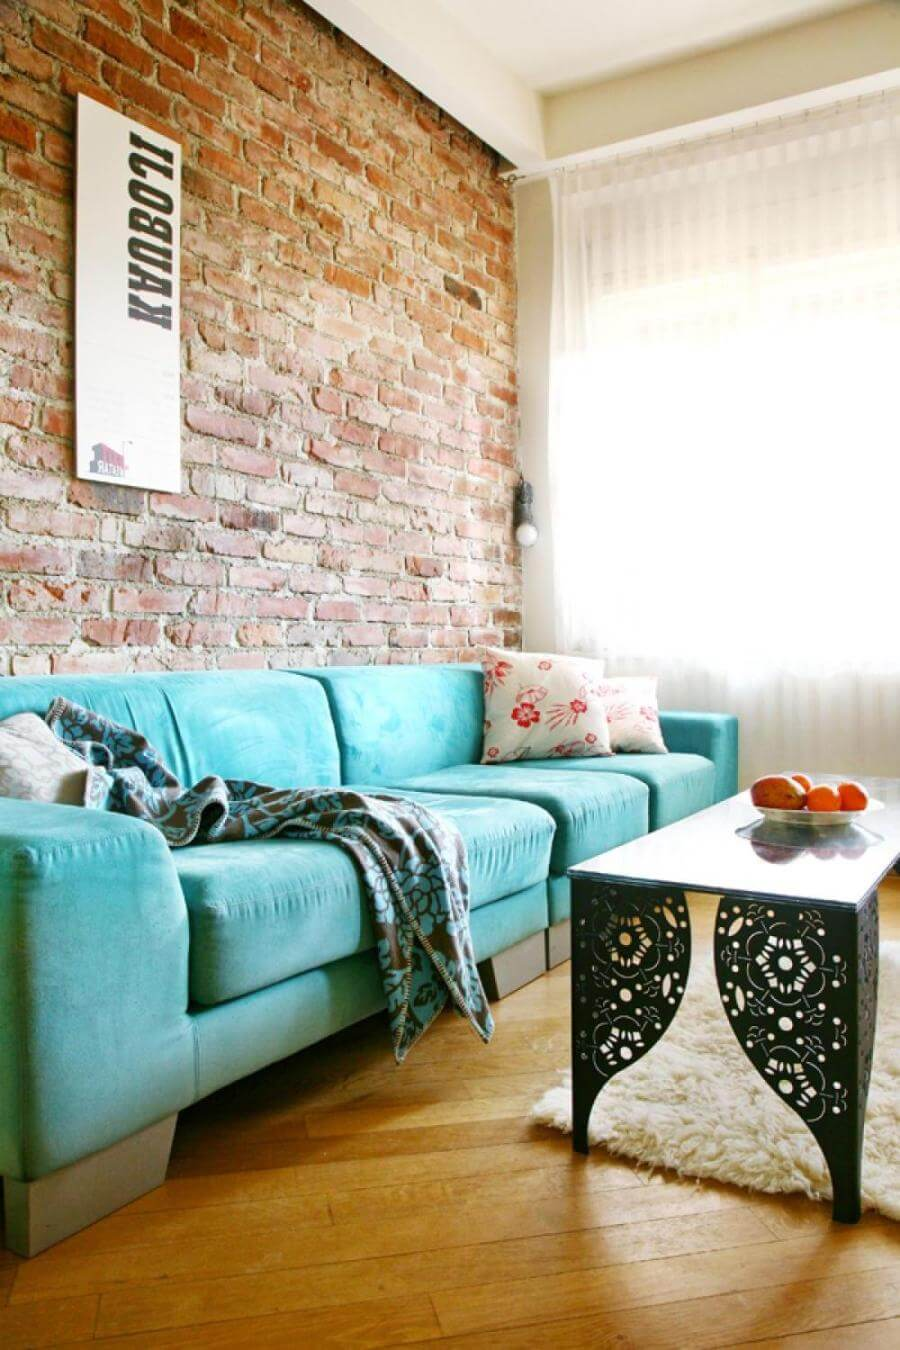 10 brick walls living room interior design ideas https for Interior design ideas for living room walls